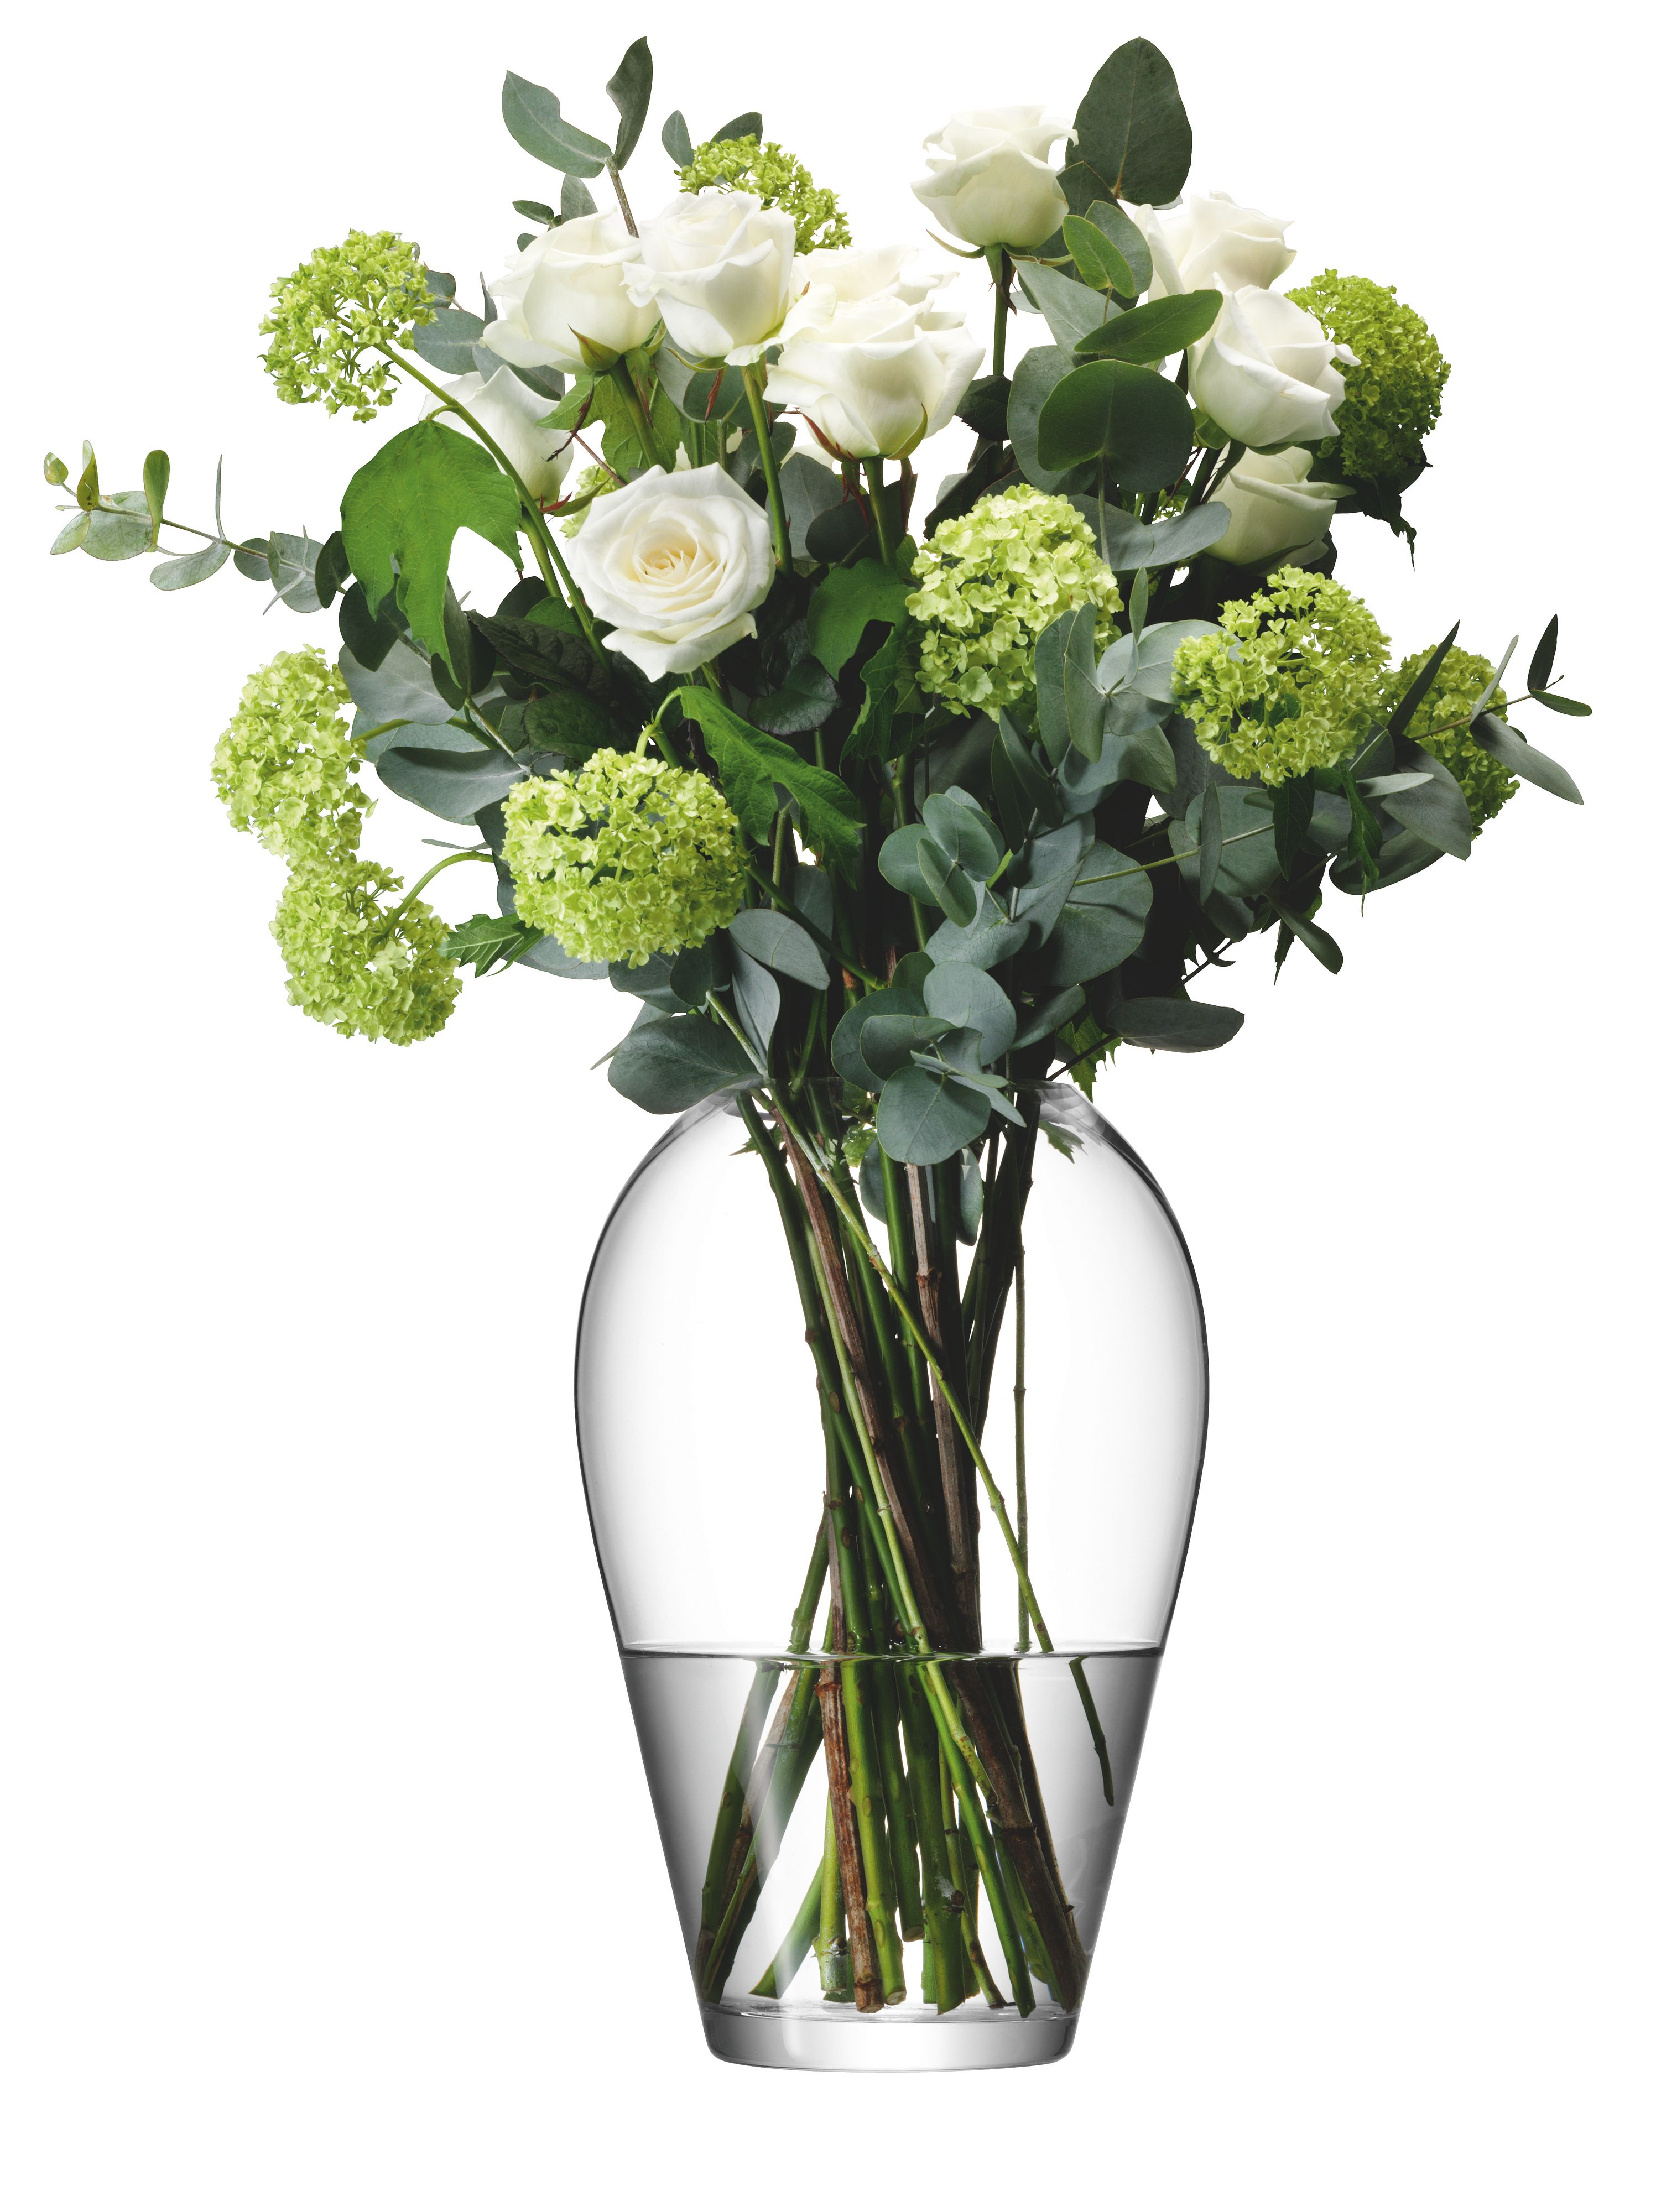 Grand bouquet vase, clear, 35cm